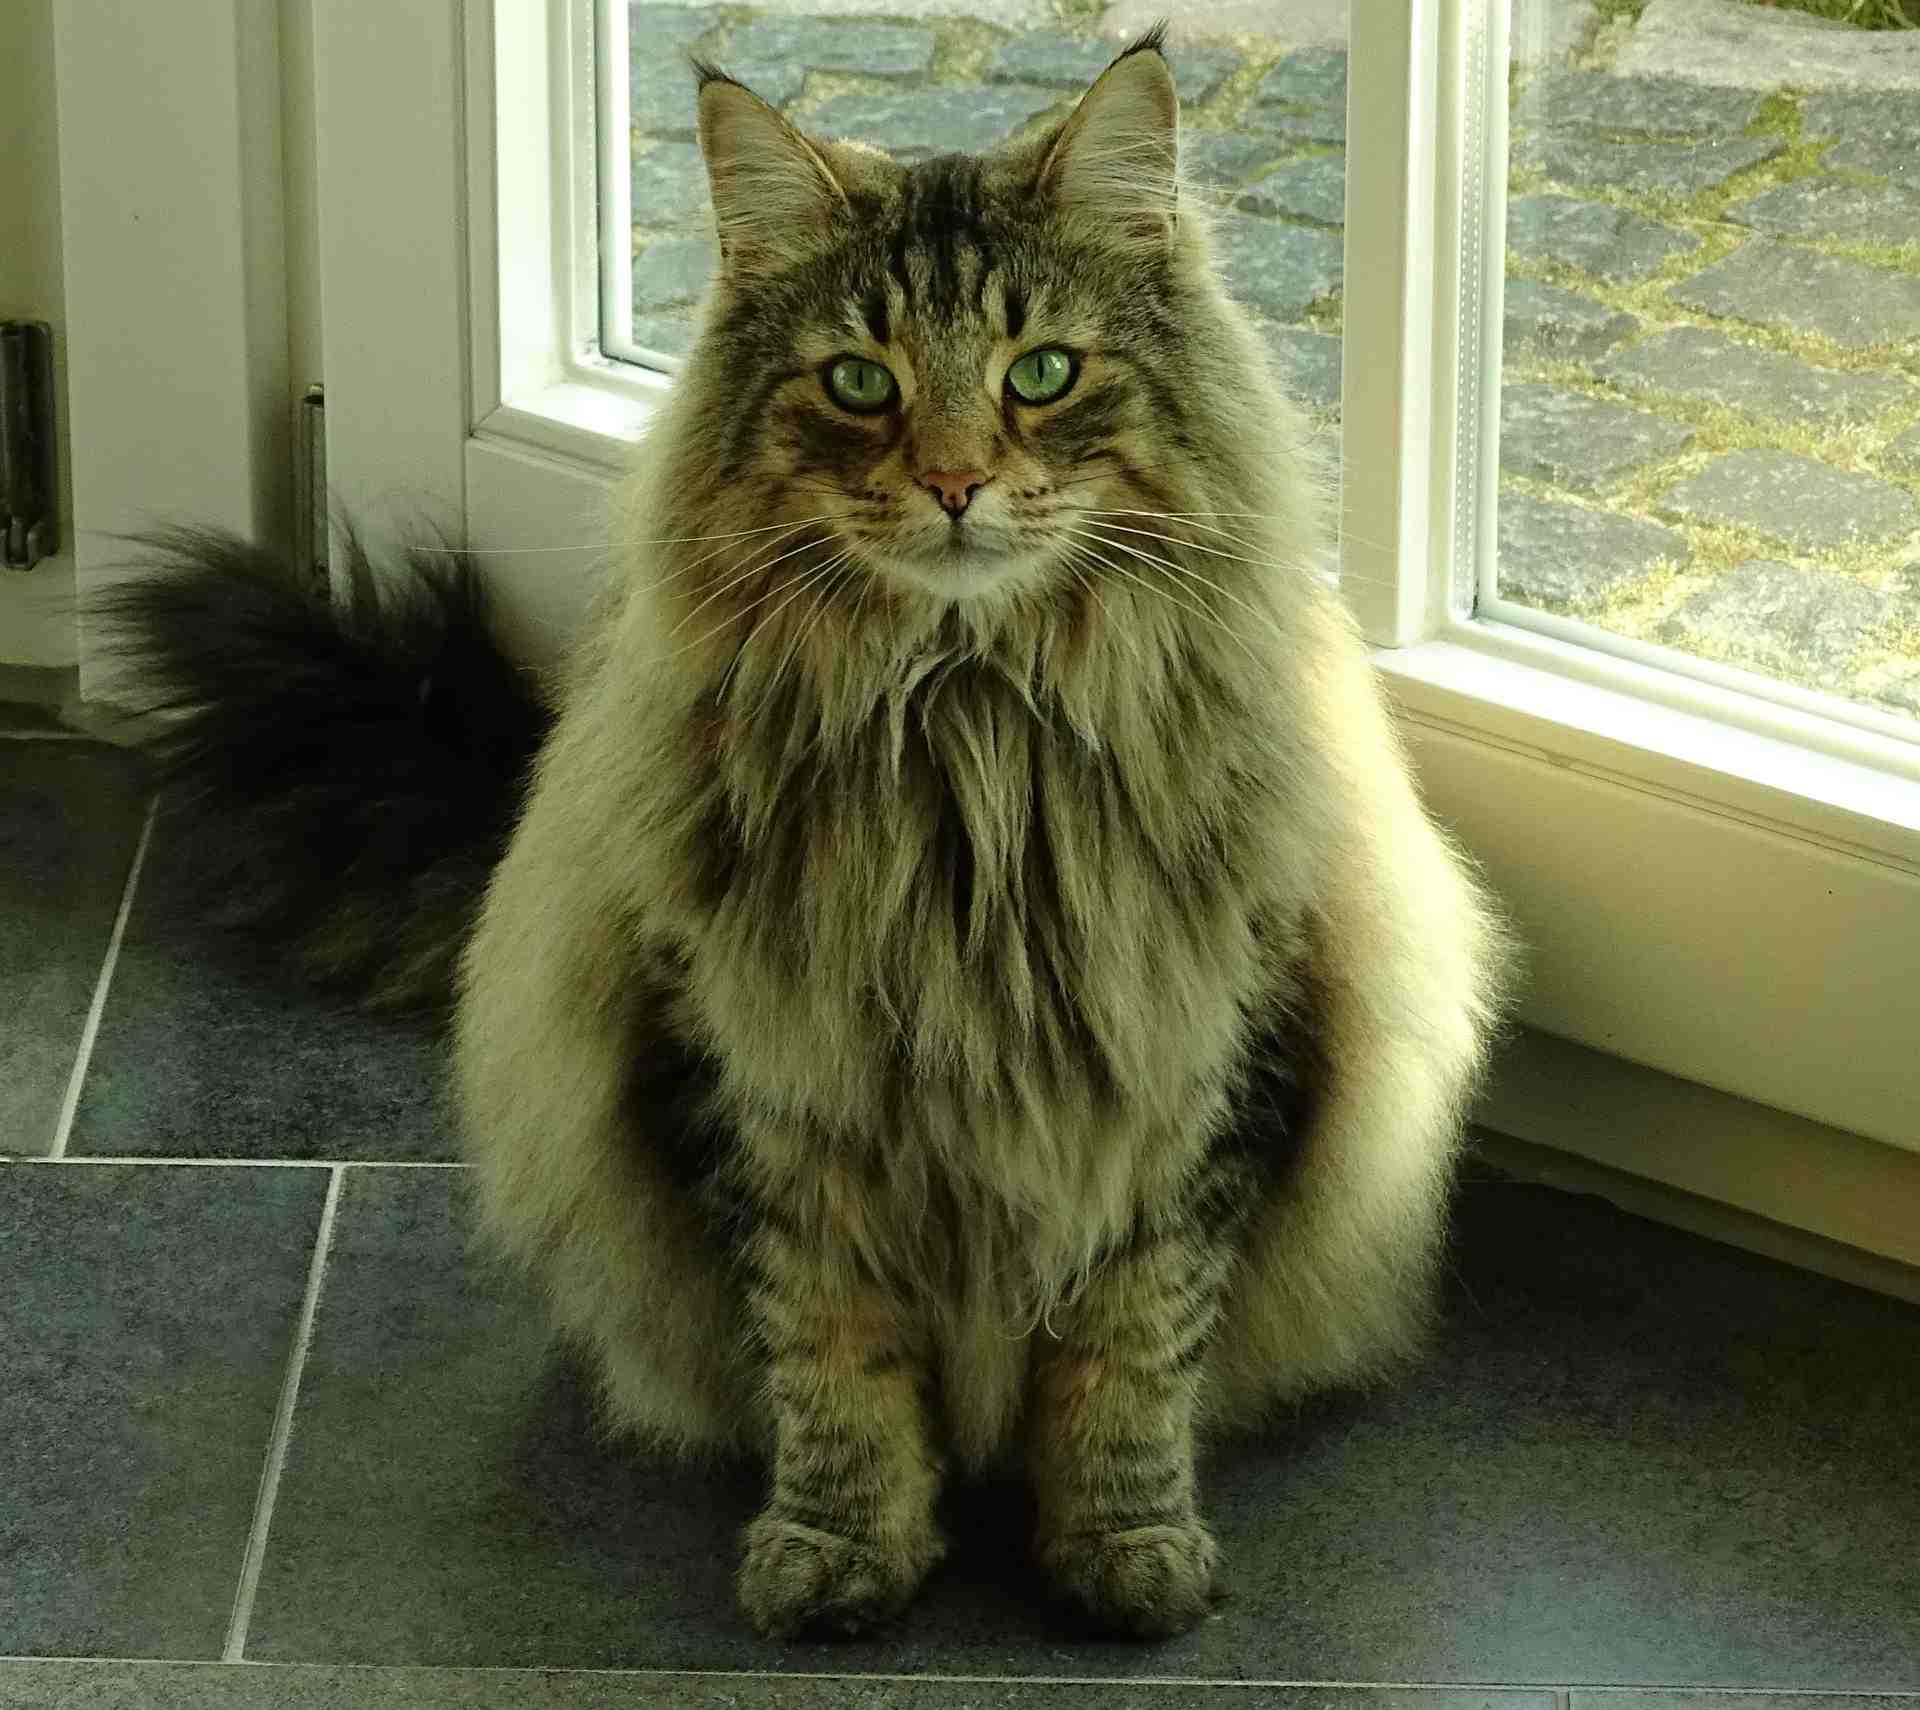 A Norwegian Forest cat with a thick coat.